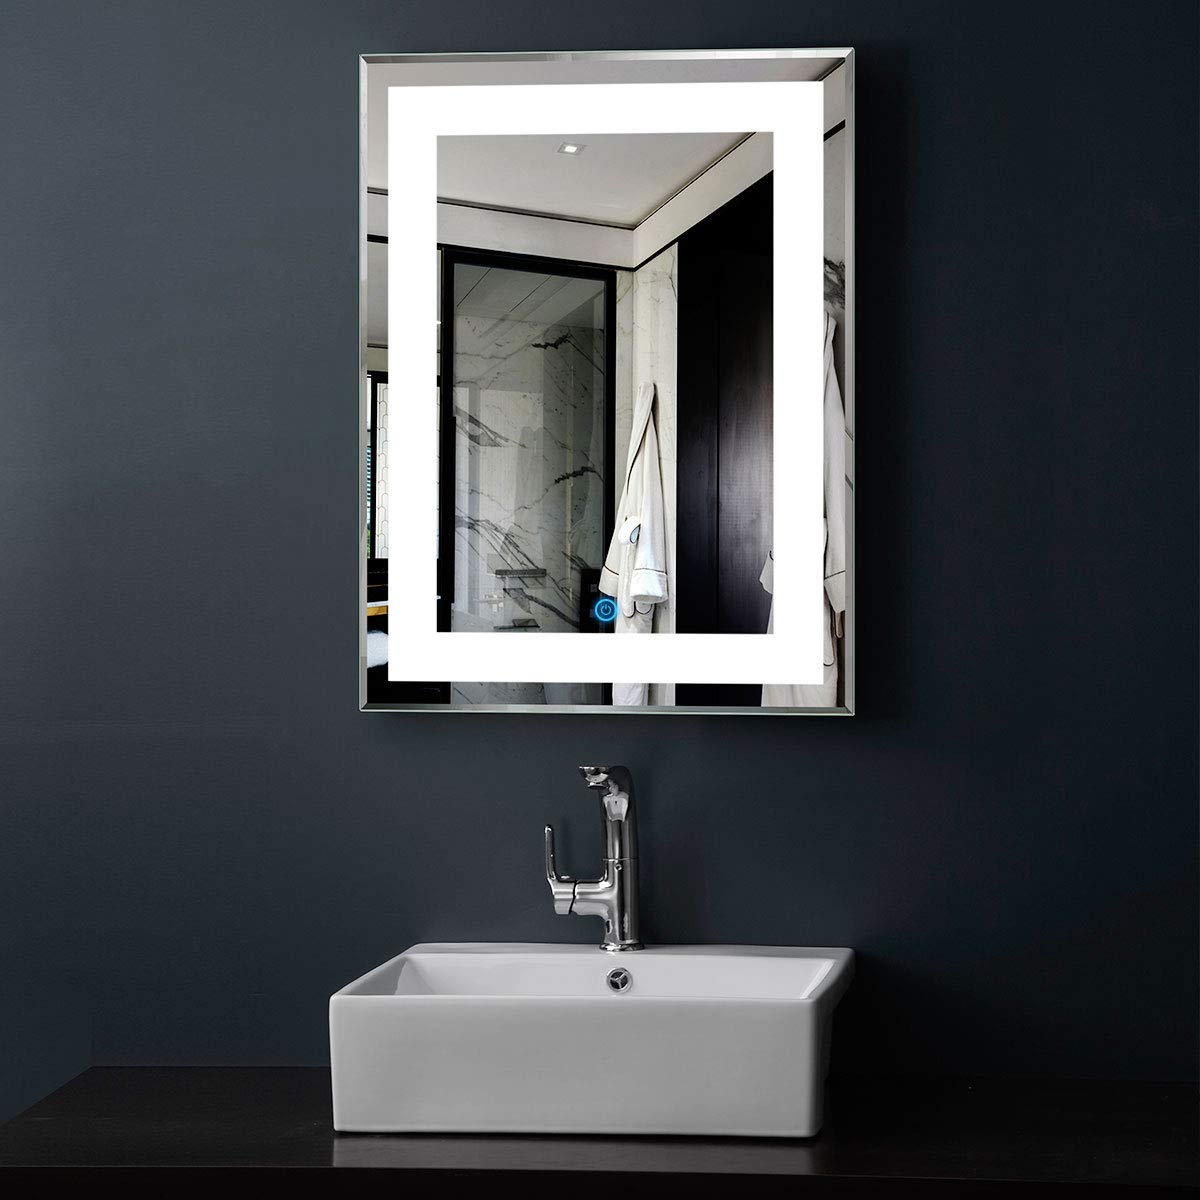 2432 in DP Home greenical LED Bathroom Silvered Mirror with Touch Button 24 Inch x 32 Inch (E-CK168)